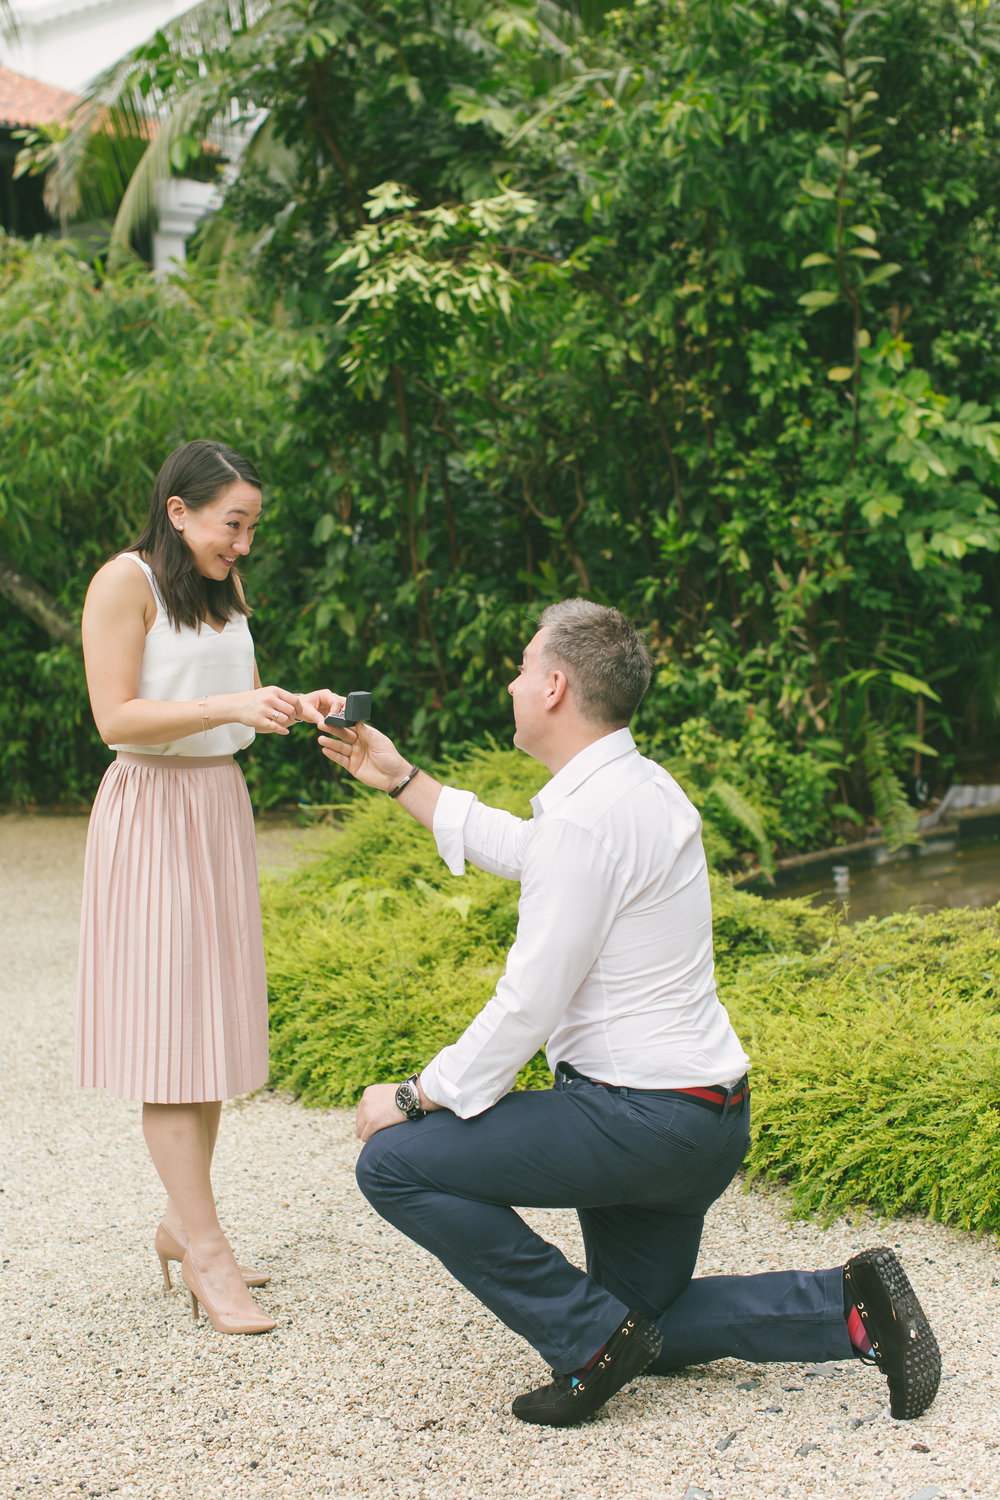 Michelle and Alvin in Singapore for Flytographer